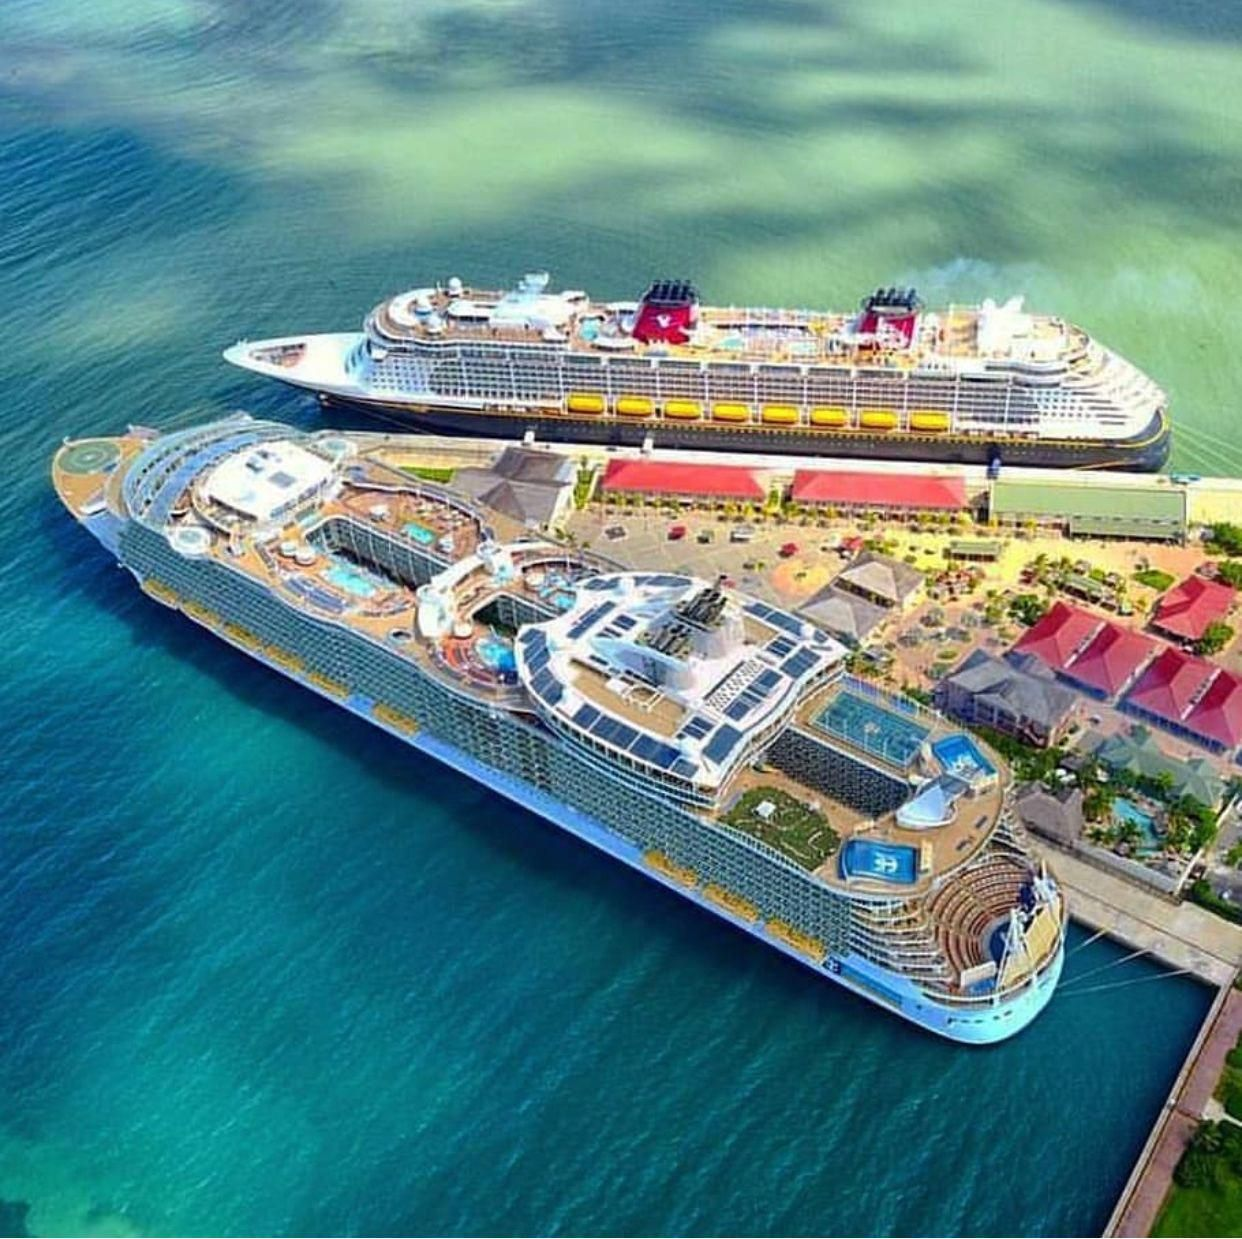 Learn more info on royal caribbean ships look at our